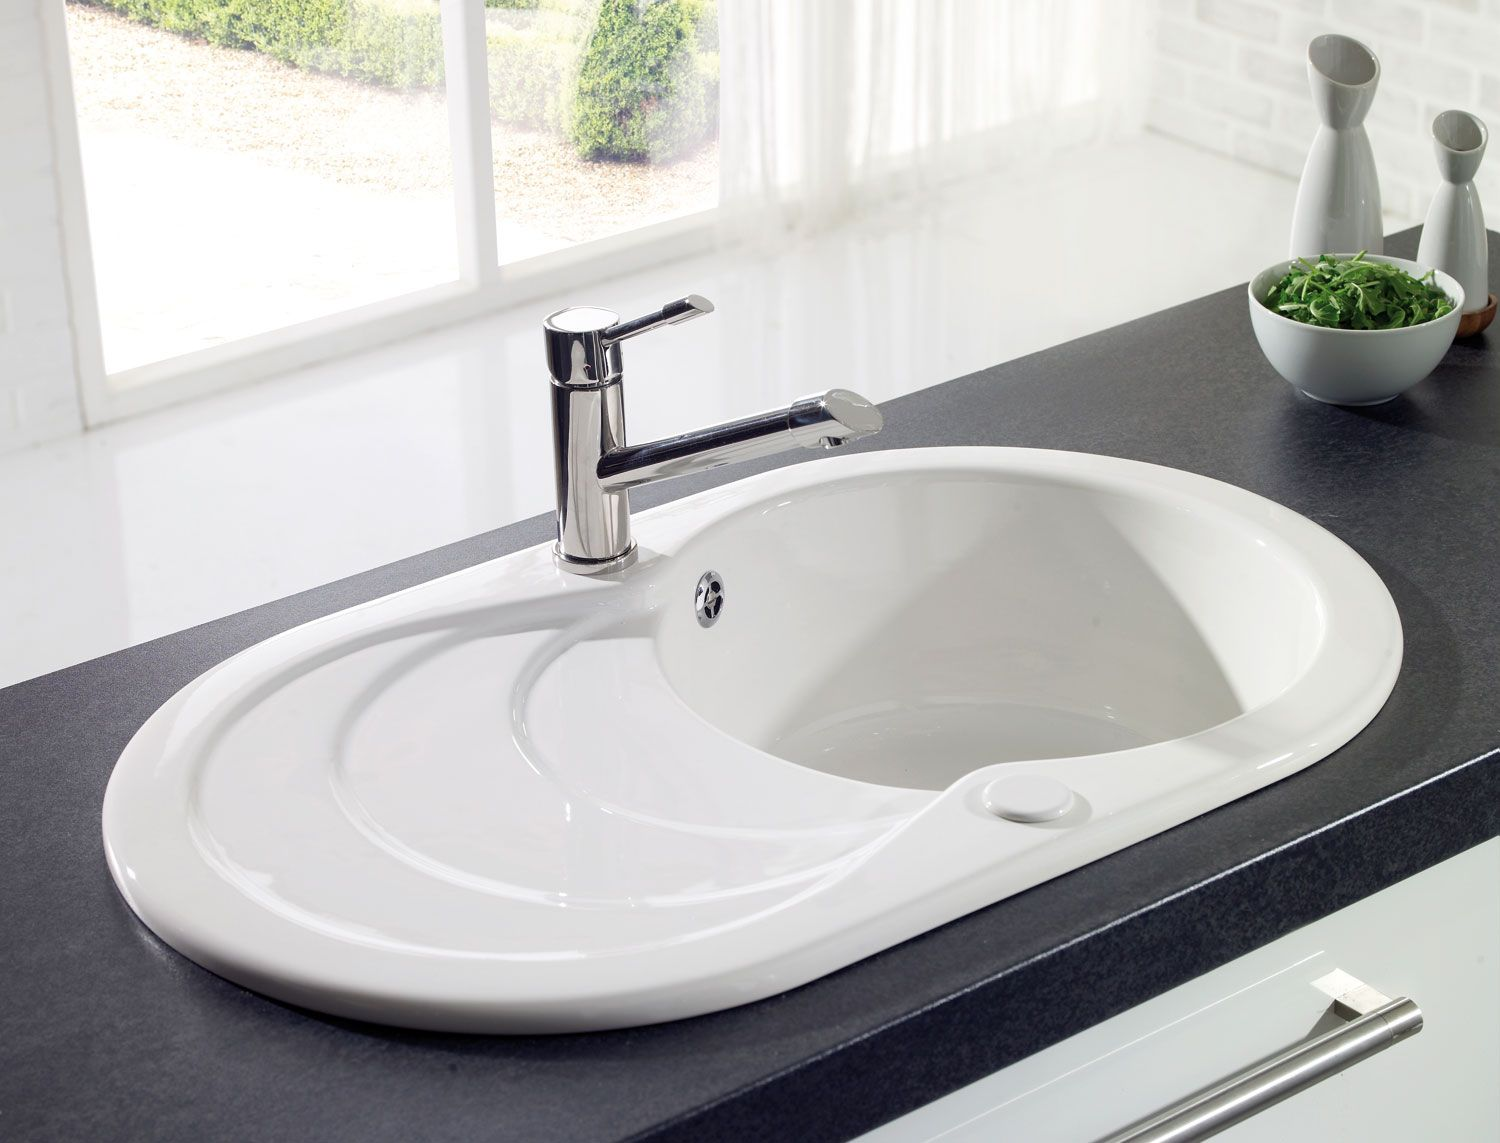 astracast cascade round bowl ceramic sink and drainer httpwwwsinks tapscomitem 8241 cascade_1_0_bowl_ceramic_sinkaspx pinterest sink taps sinks. Interior Design Ideas. Home Design Ideas